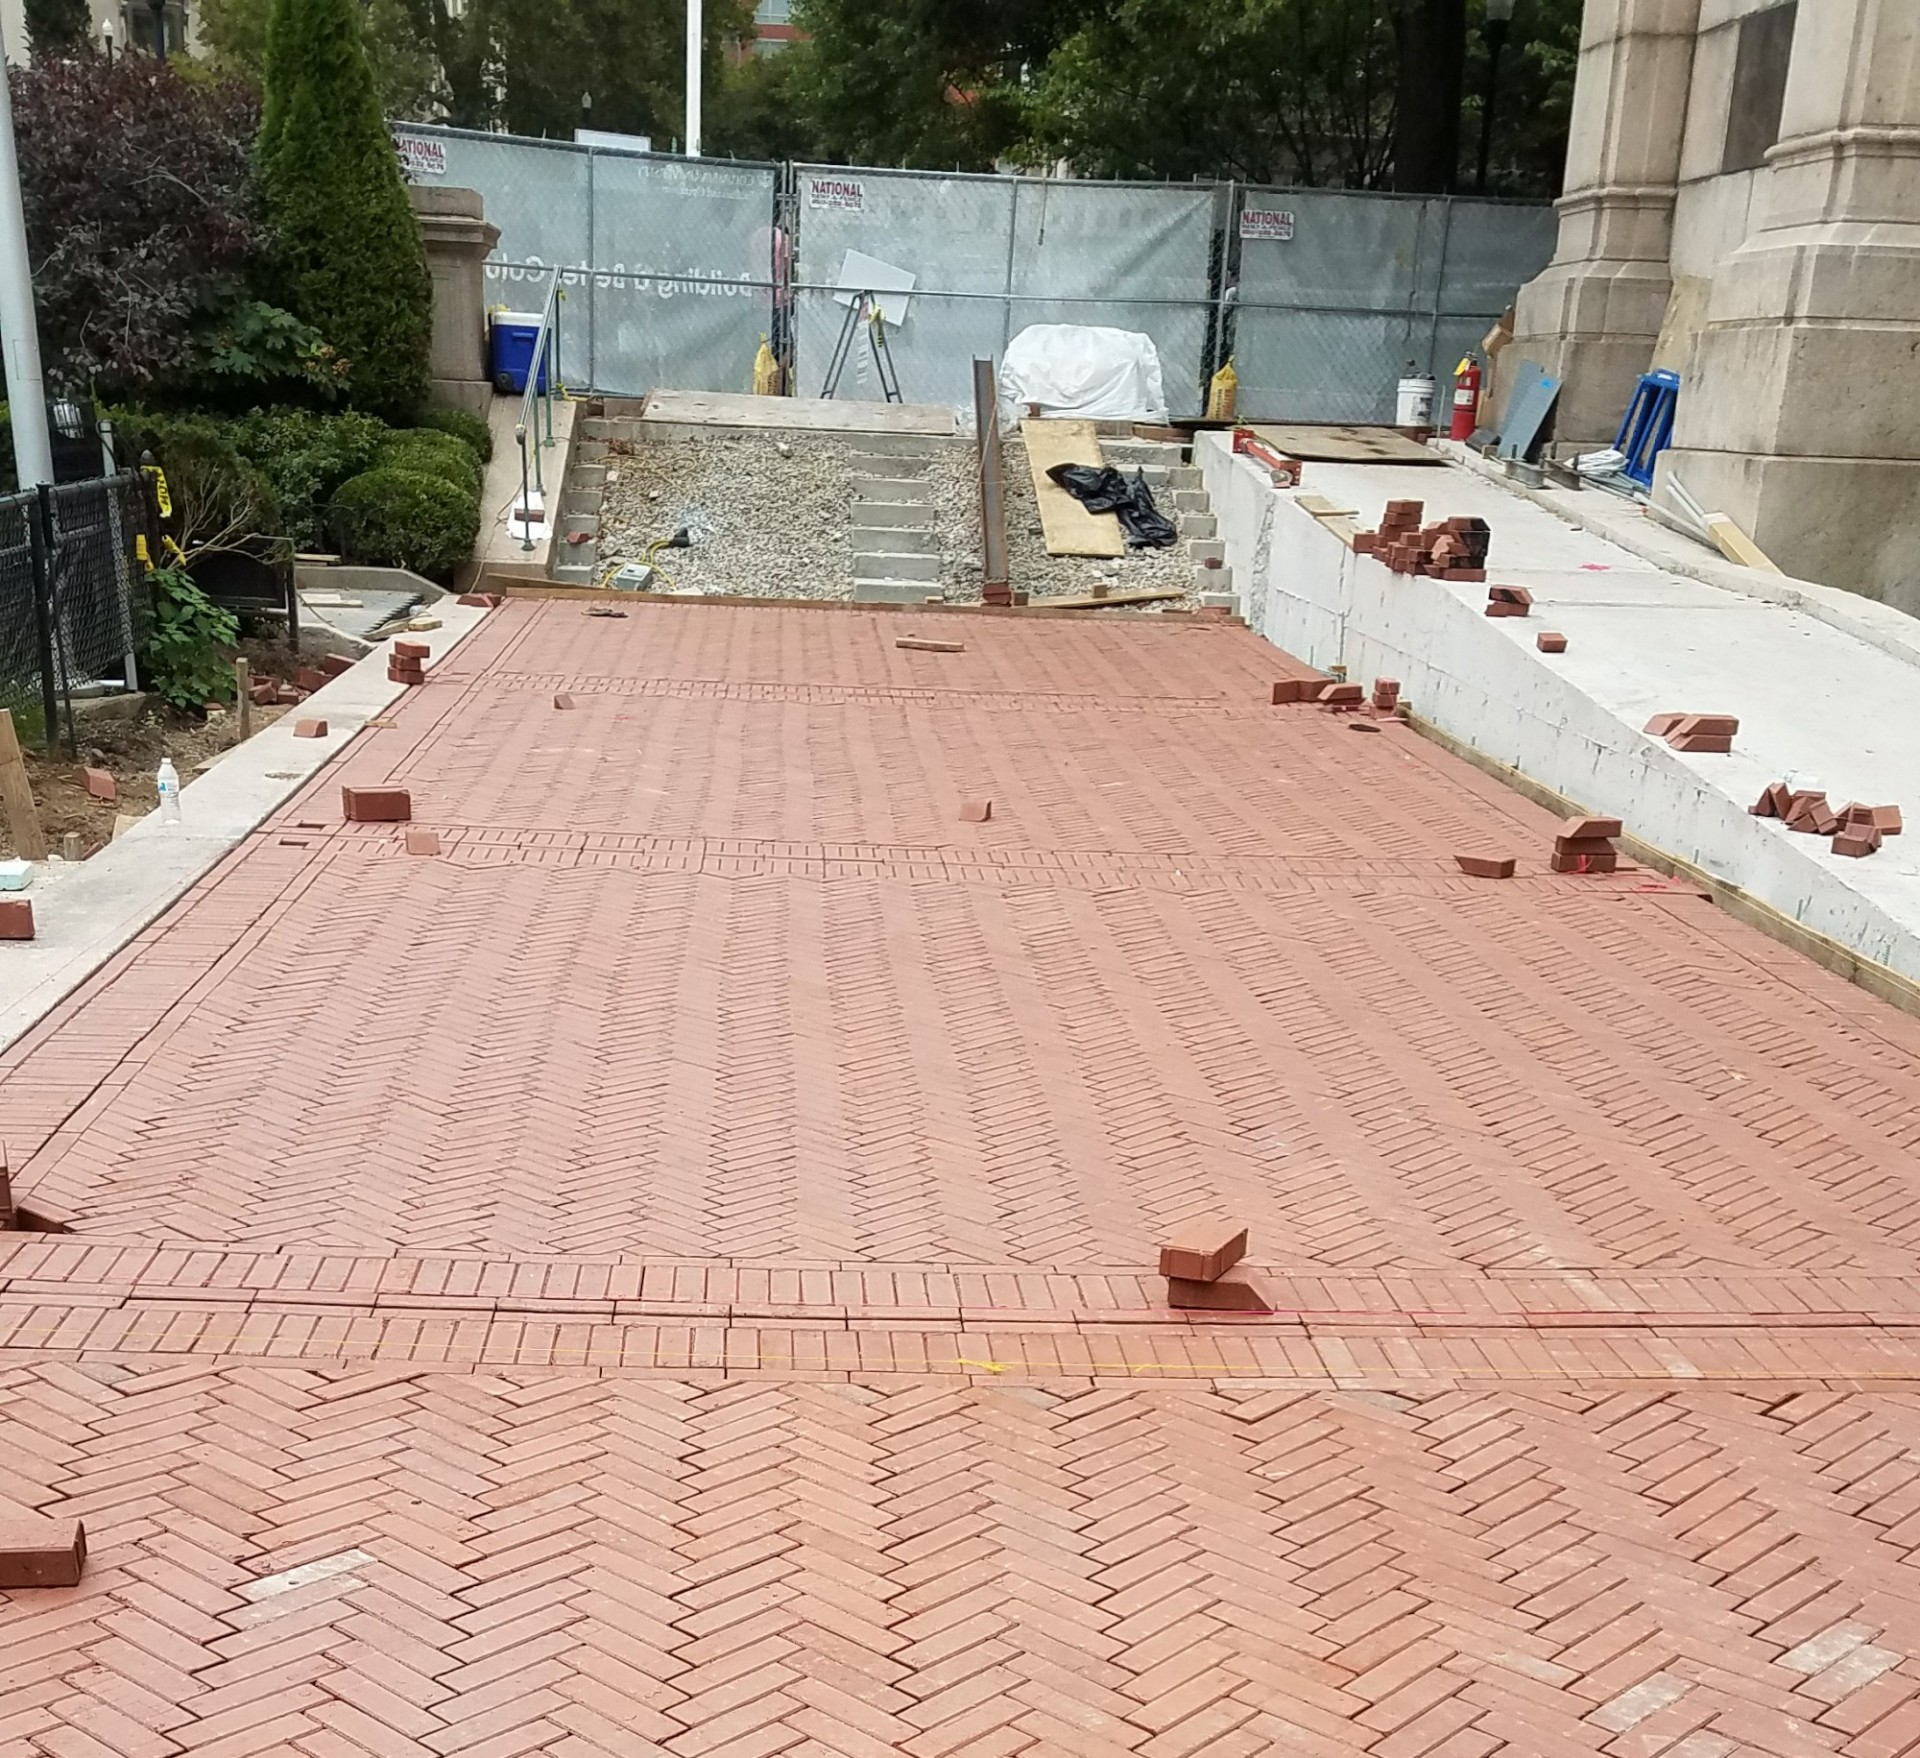 The Lower Campus accessibility ramp project includes the replacement of granite stairs and brick pathway.